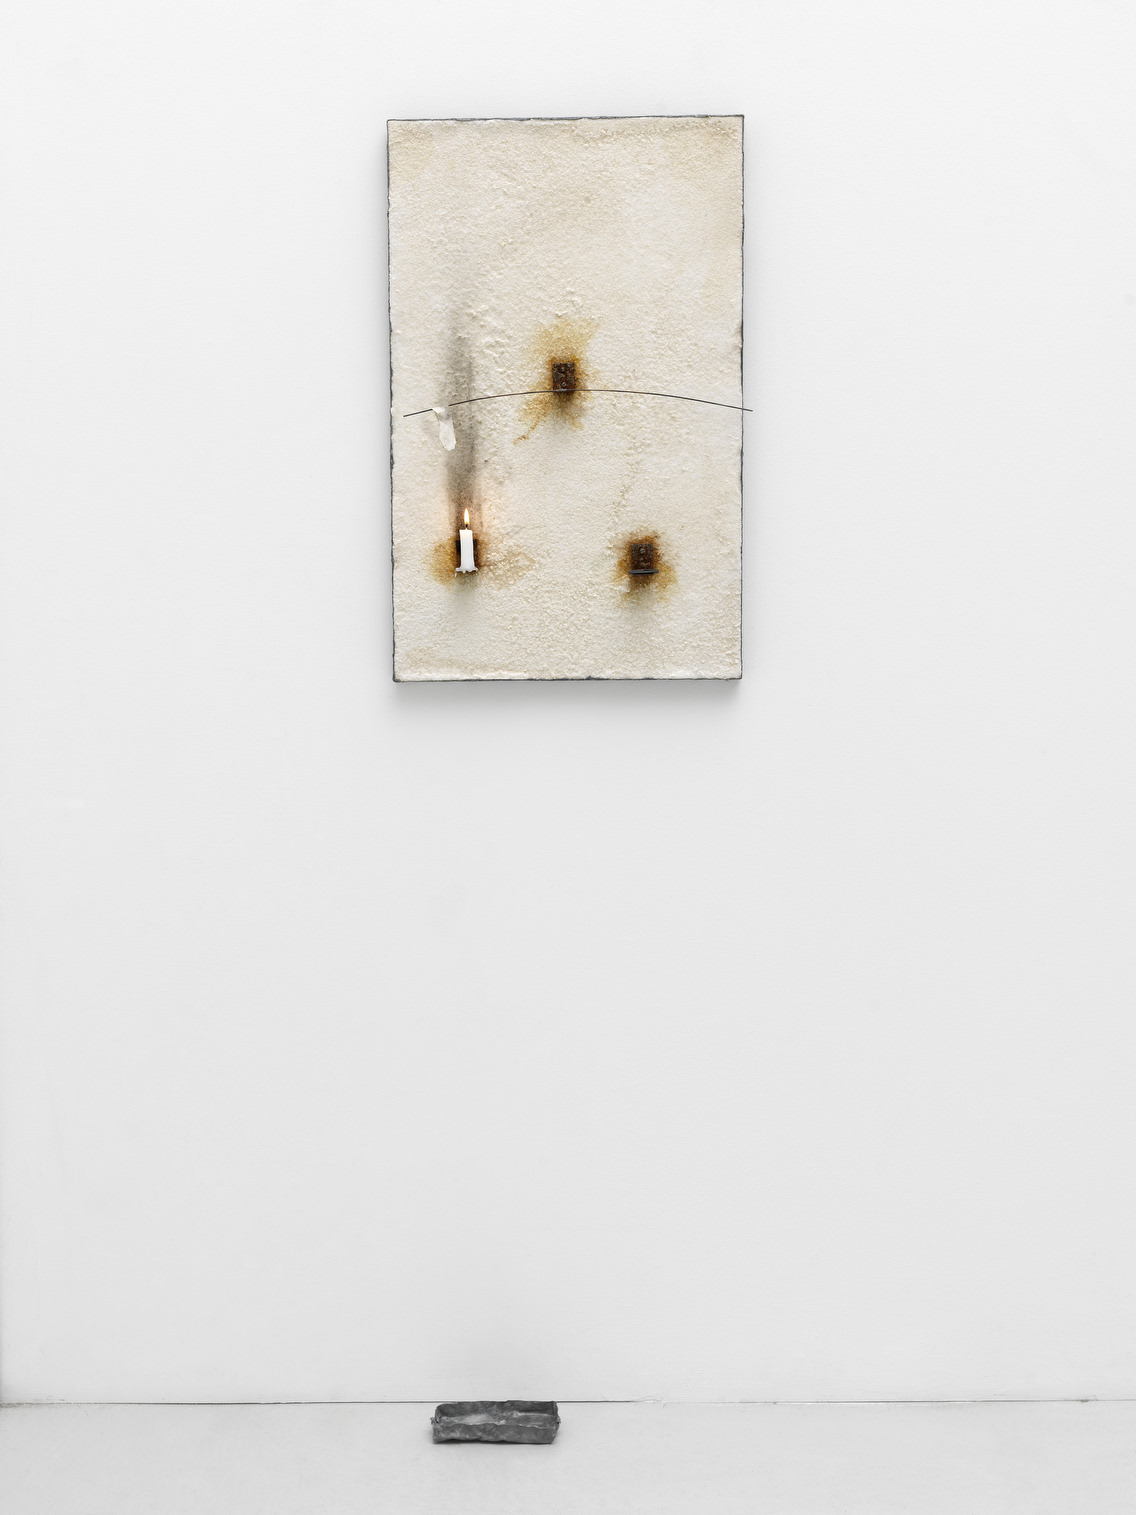 Pier Paolo Calzolari  Untitled, 1990  salt, lead, iron, copper, paper, candle 80 x 52 x 10 cm